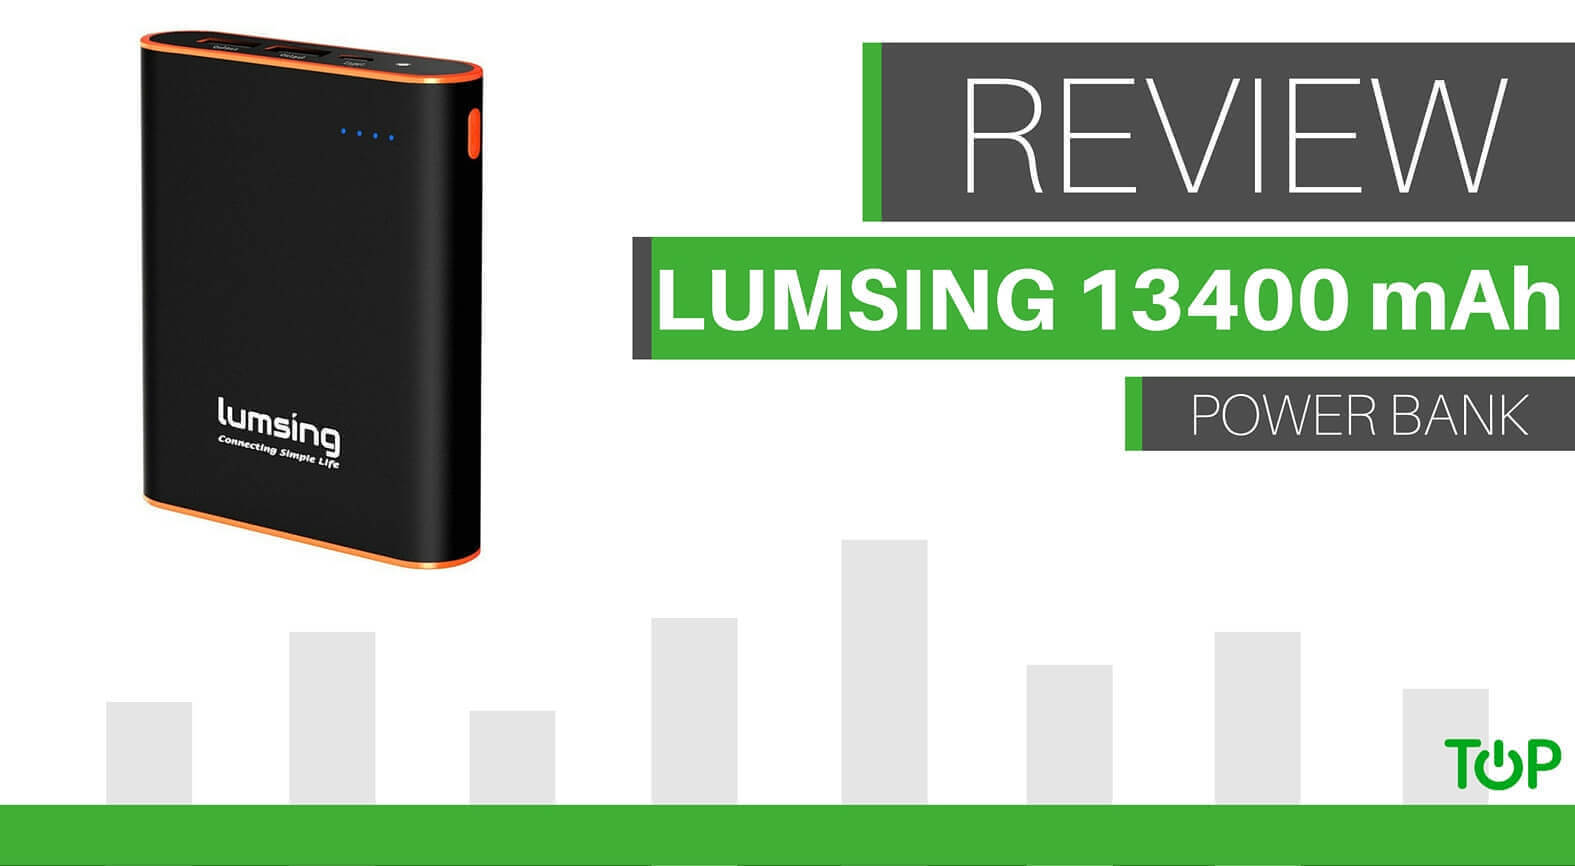 Análisis del Power Bank Lumsing Grand A1 Plus